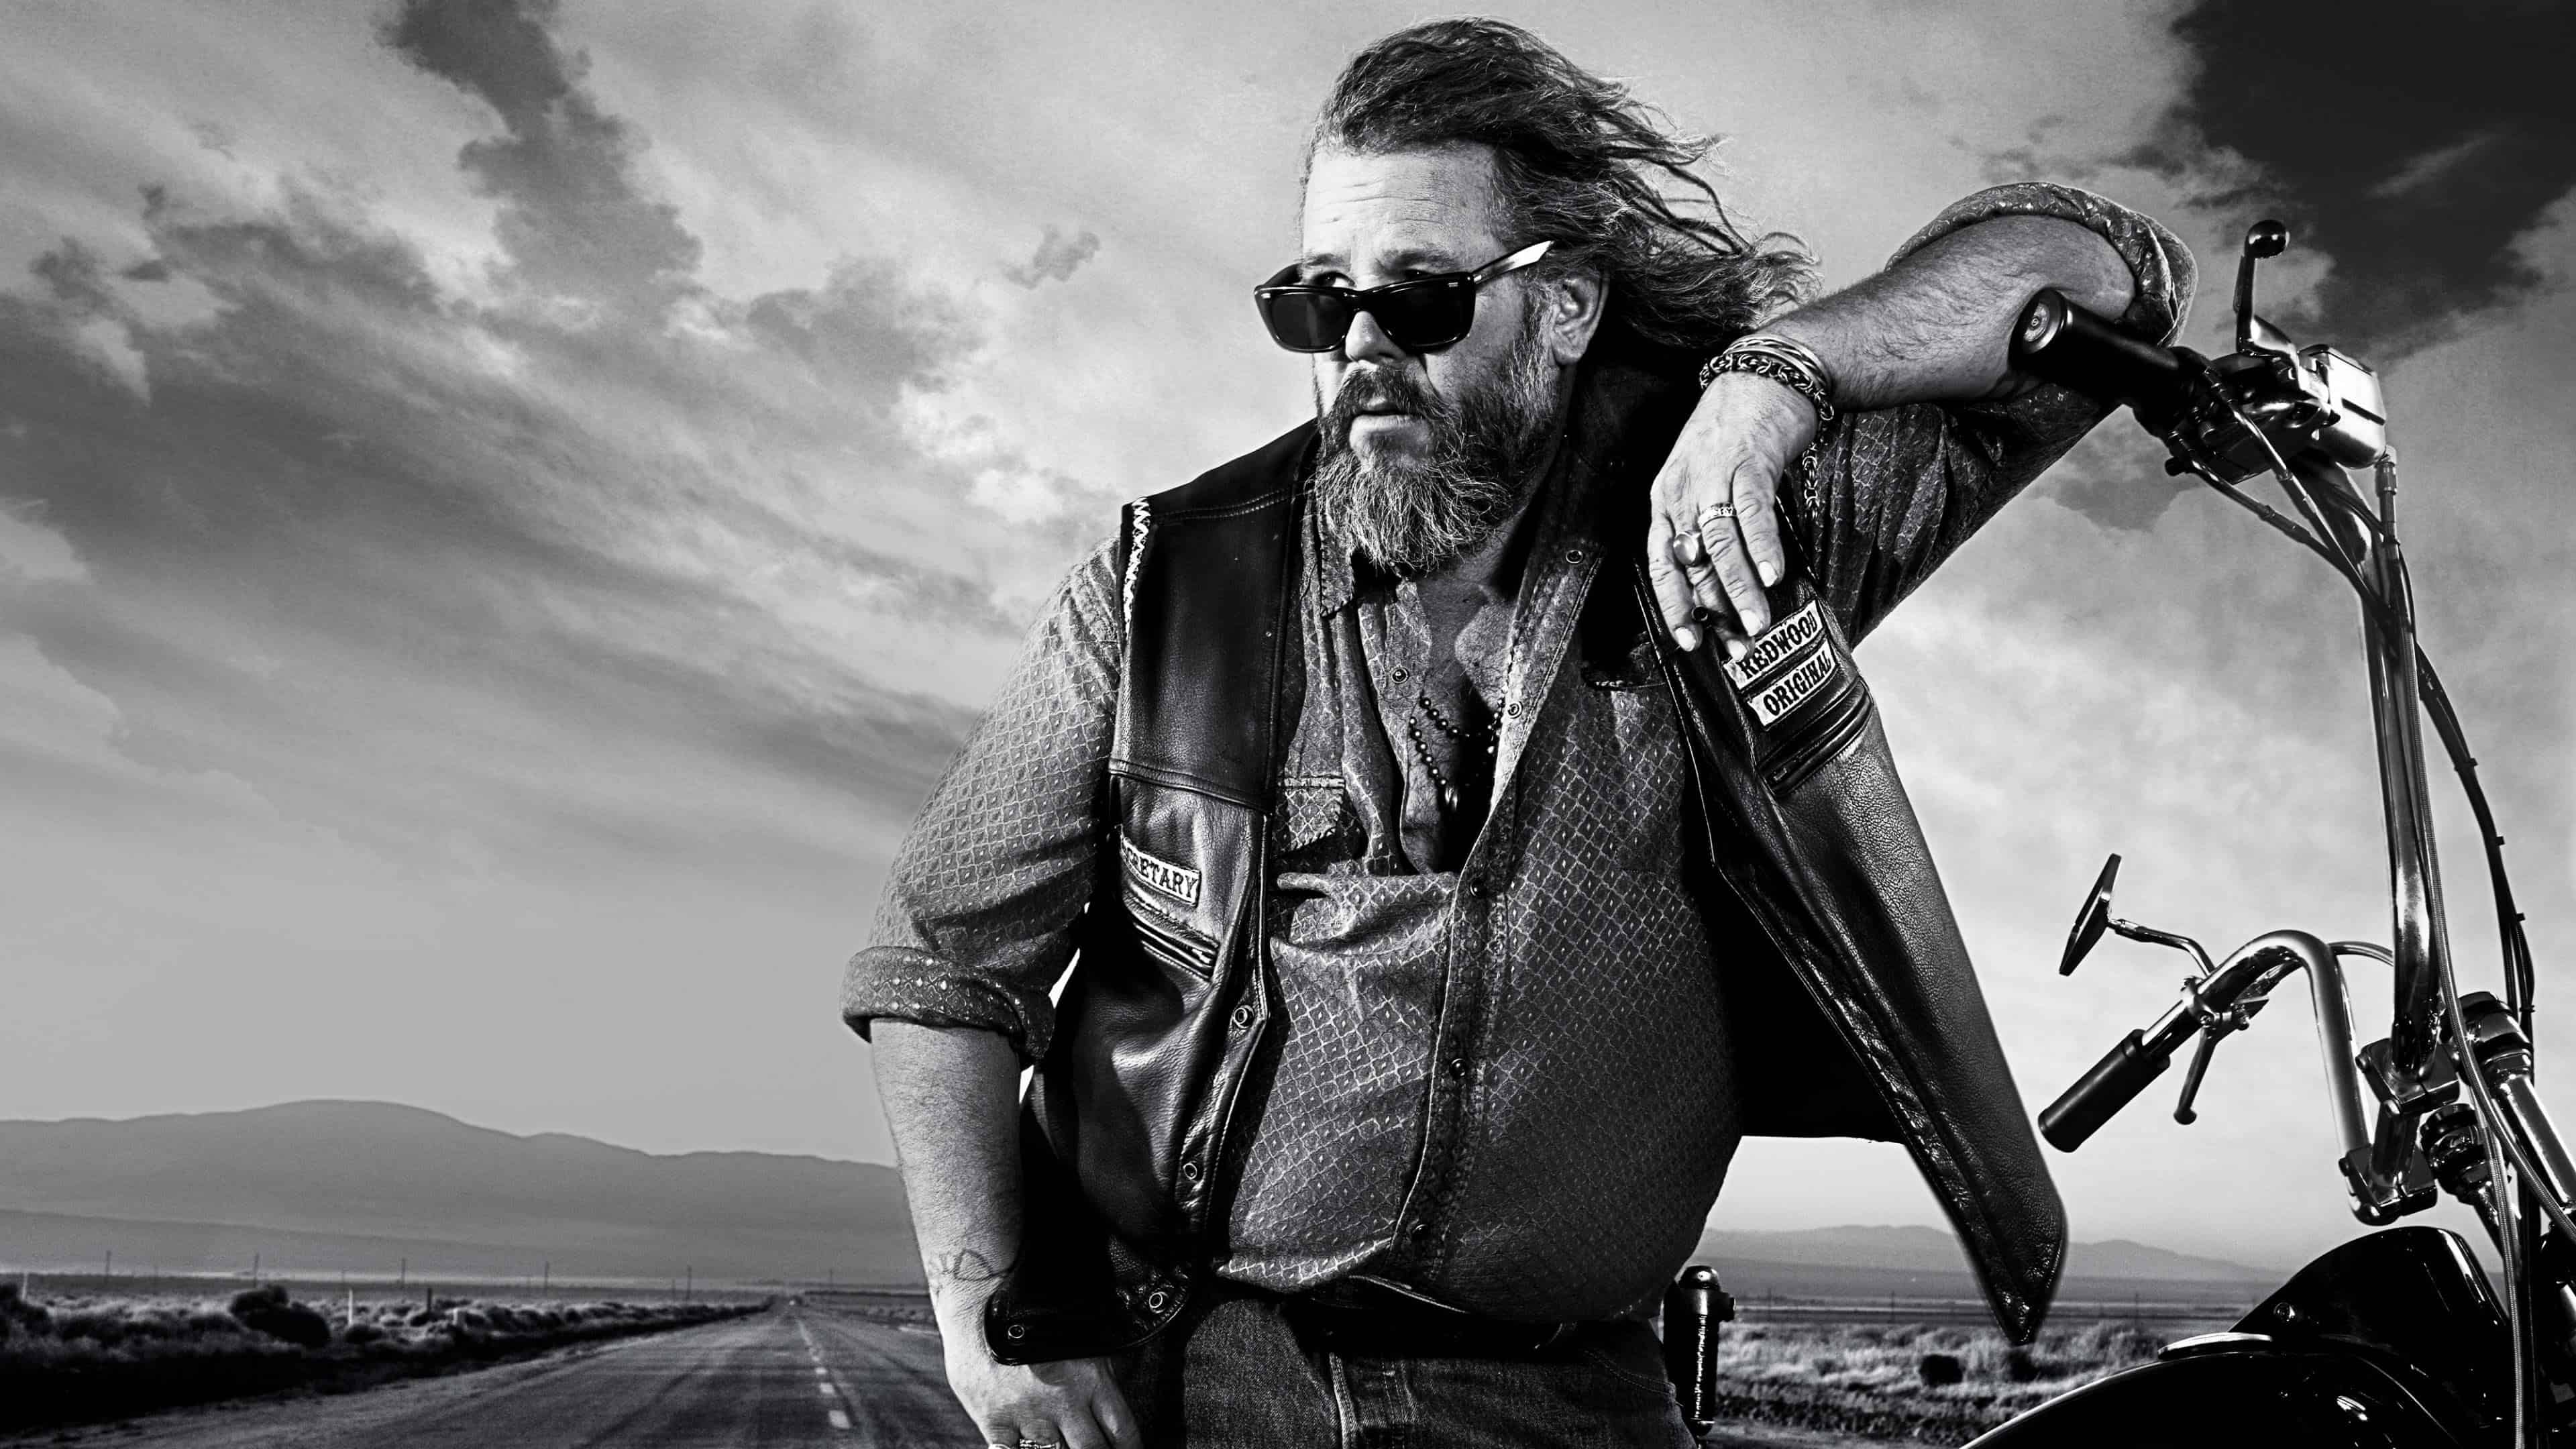 Sons Of Anarchy Bobby Munson Uhd 4k Wallpaper Pixelz